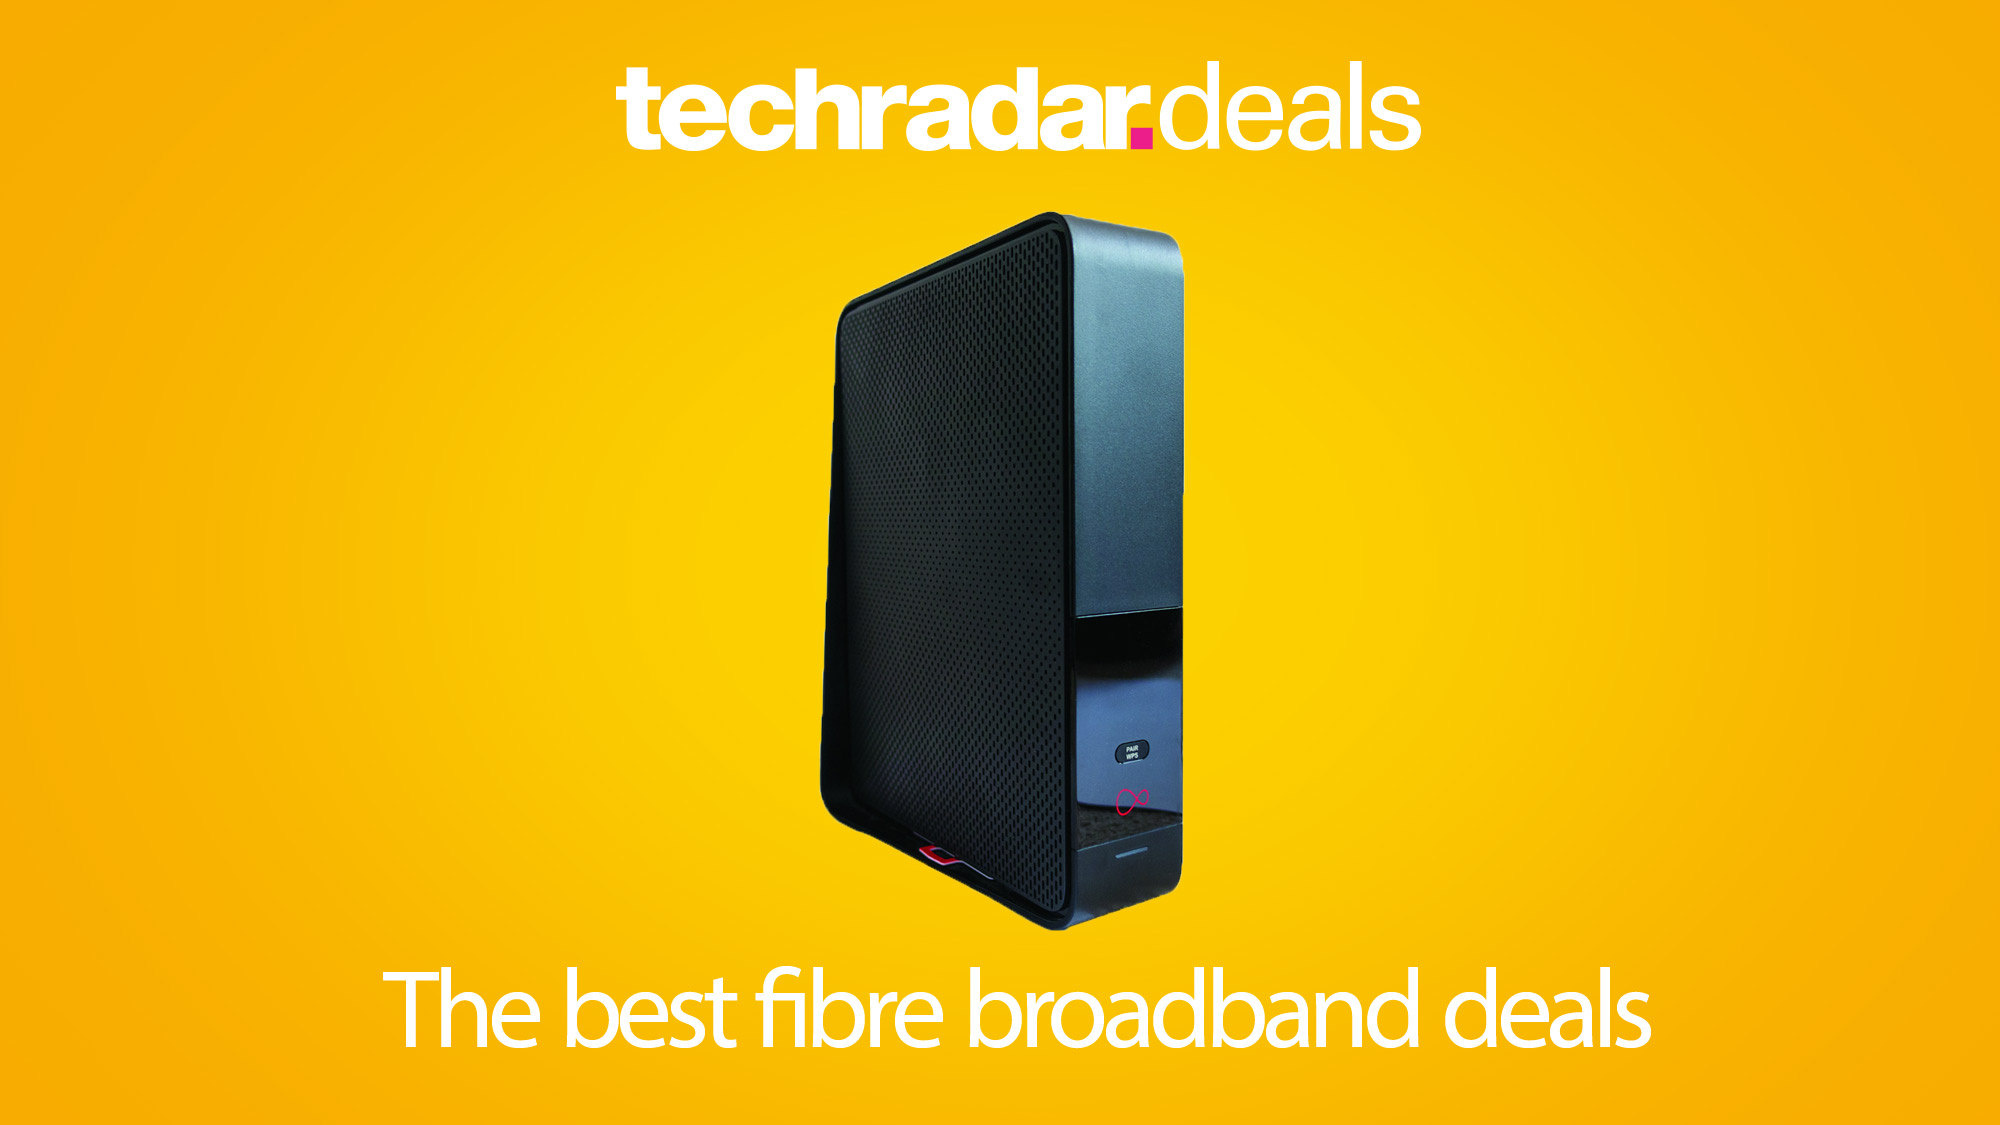 The best fibre broadband deals in August 2019: from £19 per month